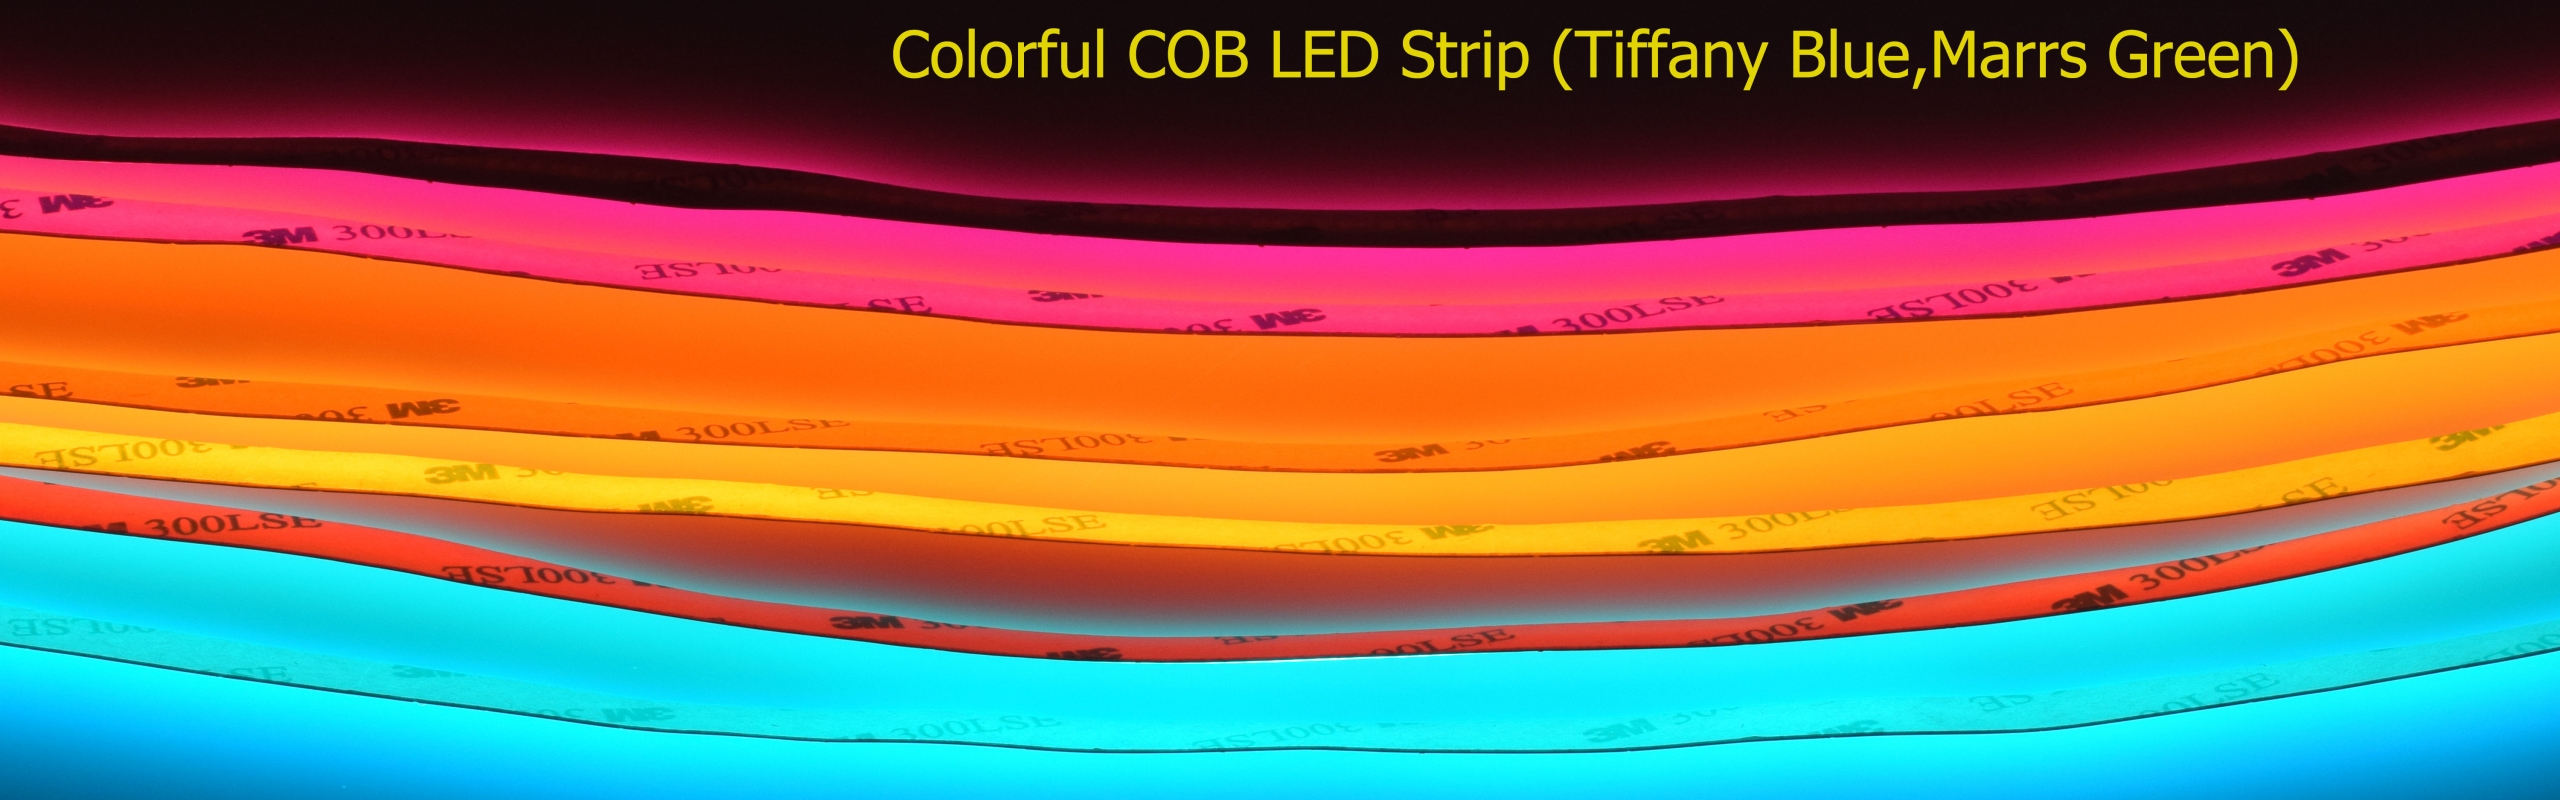 COB LED STRIP Marrs Green Tiffany Blue chinese factory colorful scaled